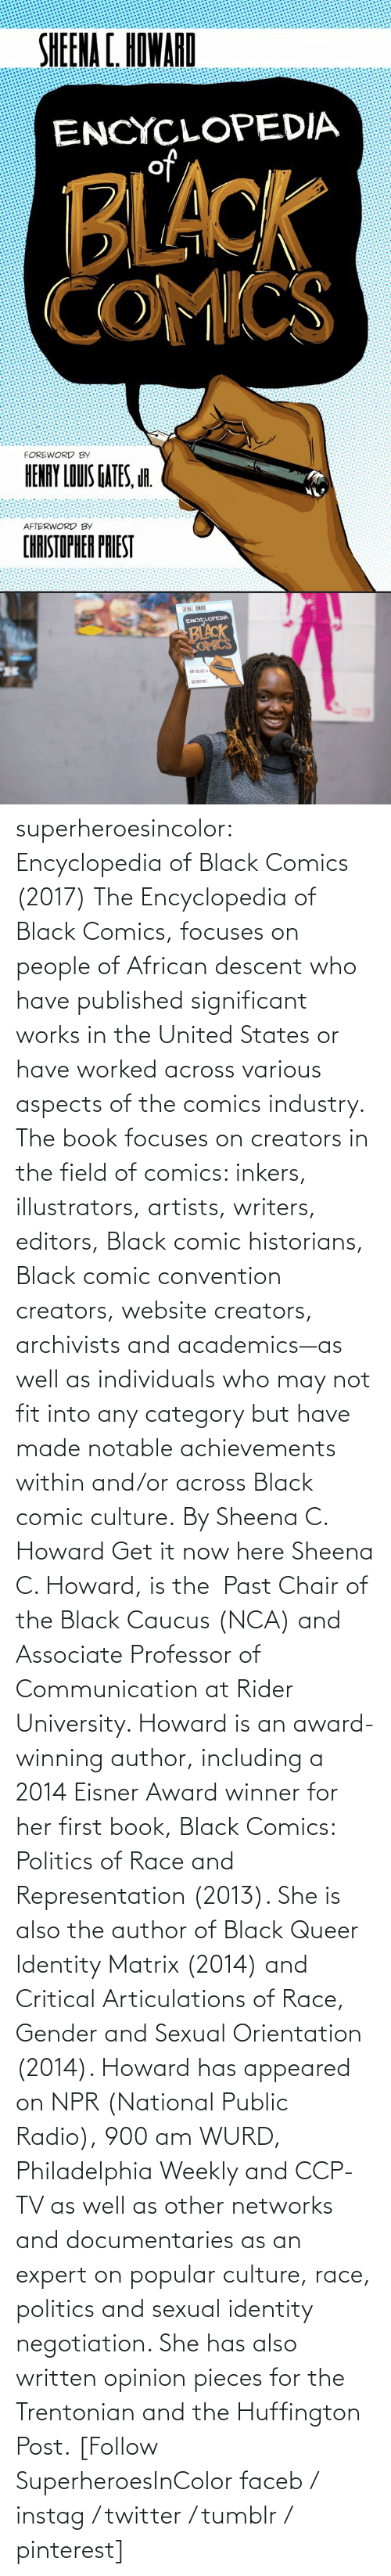 states: superheroesincolor: Encyclopedia of Black Comics (2017) The Encyclopedia of Black Comics, focuses on people of African descent who have published significant works in the United States or have worked across various aspects of the comics industry.  The book focuses on creators in the field of comics: inkers, illustrators, artists, writers, editors, Black comic historians, Black comic convention creators, website creators, archivists and academics—as well as individuals who may not fit into any category but have made notable achievements within and/or across Black comic culture. By Sheena C. Howard Get it now here  Sheena C. Howard, is the  Past Chair of the Black Caucus (NCA) and Associate Professor of Communication at Rider University. Howard is an award-winning author, including a 2014 Eisner Award winner for her first book, Black Comics: Politics of Race and Representation (2013). She is also the author of Black Queer Identity Matrix (2014) and Critical Articulations of Race, Gender and Sexual Orientation (2014). Howard has appeared on NPR (National Public Radio), 900 am WURD, Philadelphia Weekly and CCP-TV as well as other networks and documentaries as an expert on popular culture, race, politics and sexual identity negotiation. She has also written opinion pieces for the Trentonian and the Huffington Post.   [Follow SuperheroesInColor faceb / instag / twitter / tumblr / pinterest]